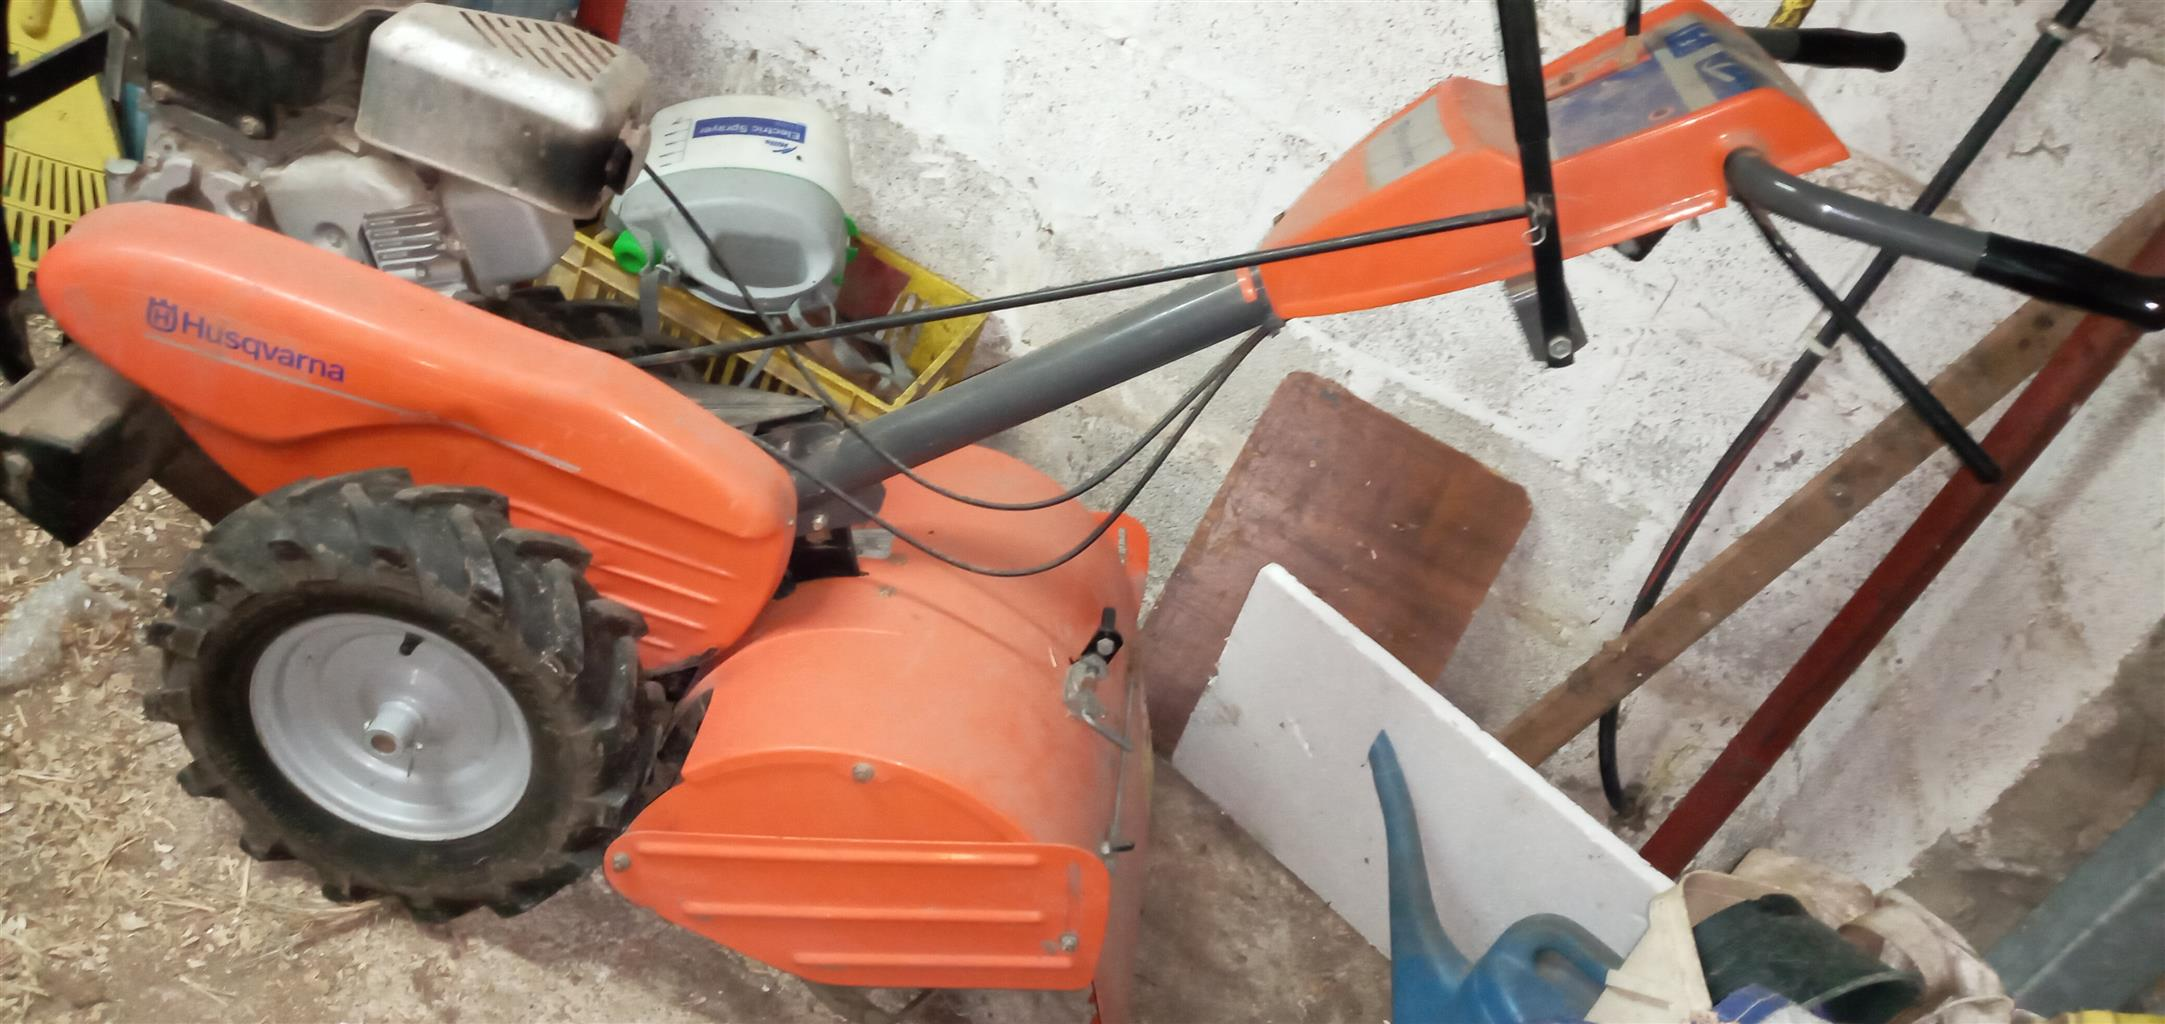 Rotavator up for grabs